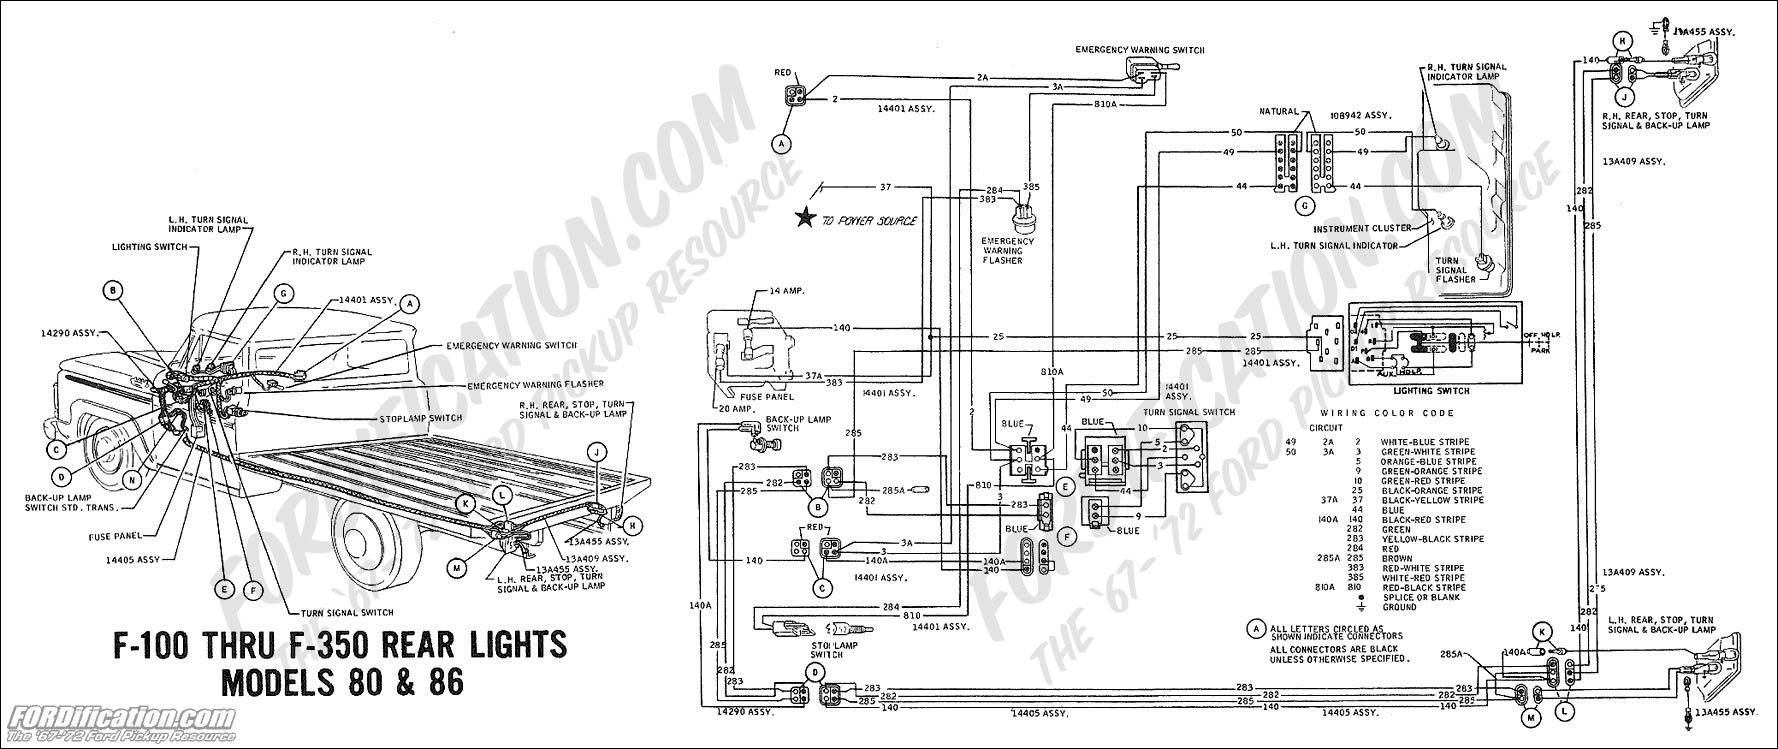 wiring_69rearlights mdls80 86 wiring diagrams for 1995 ford f 350 pickup wiper motor fixya Ford Electrical Wiring Diagrams at virtualis.co